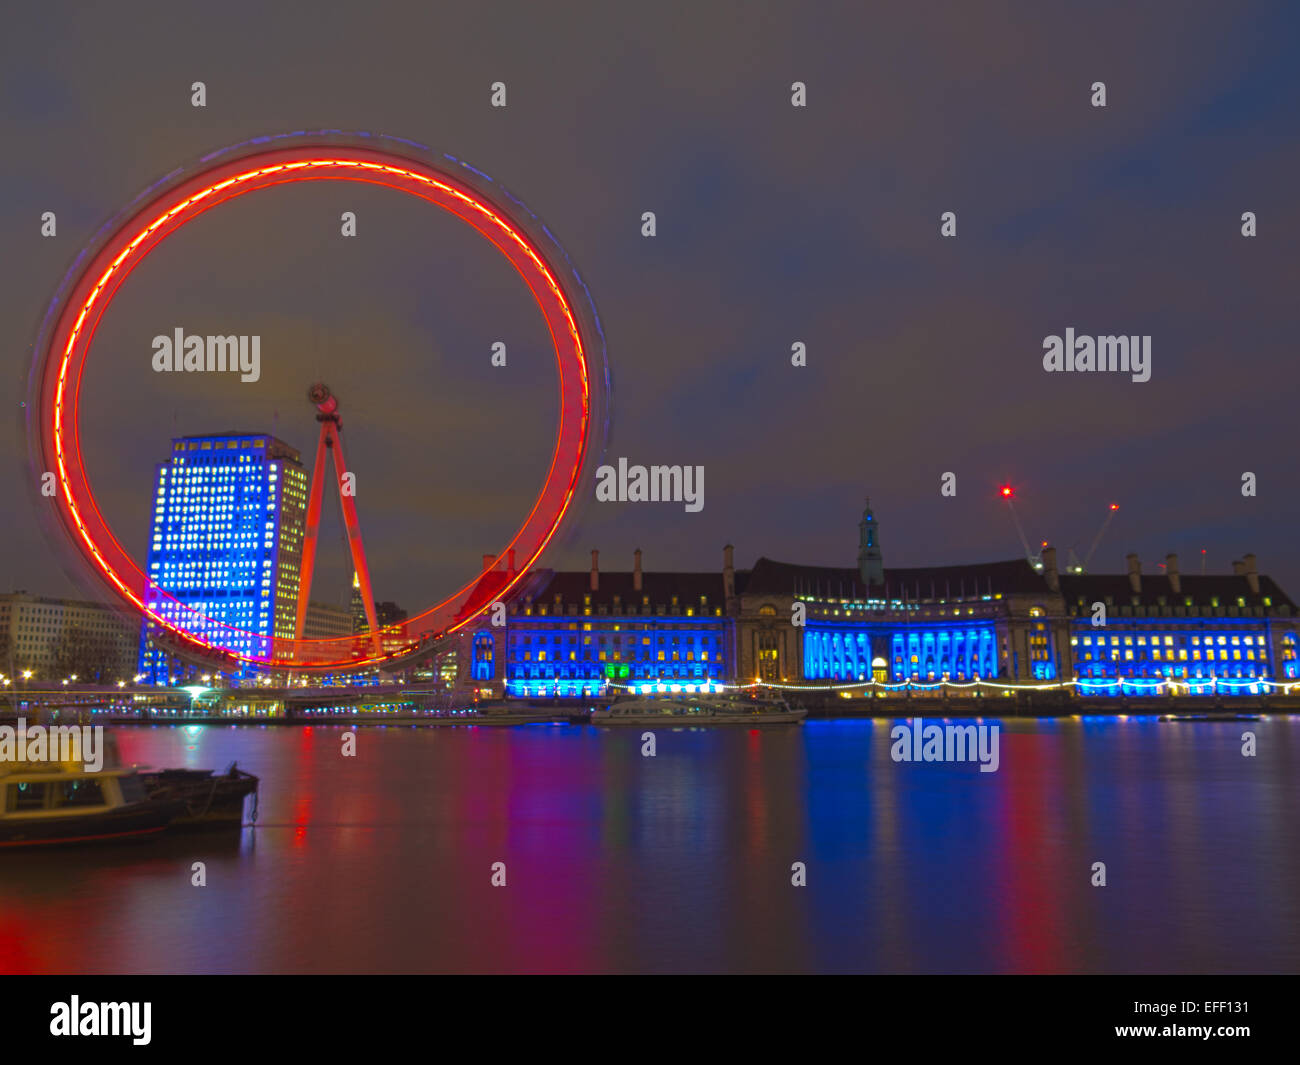 The London Eye at night - Stock Image